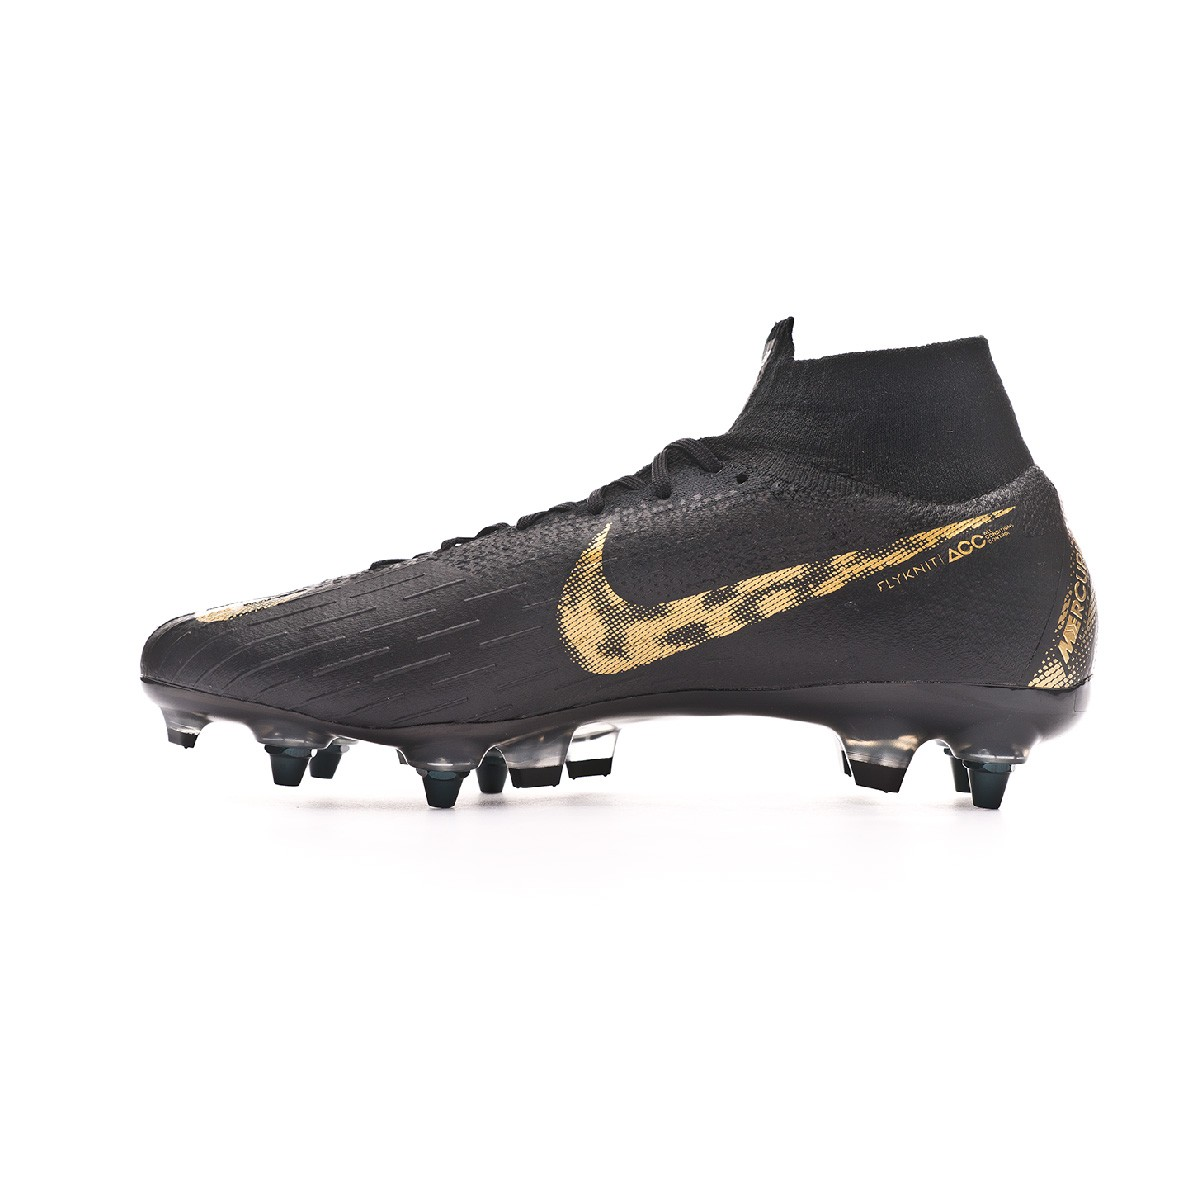 Nike Mercurial Superfly VI Elite Anti Clog SG Pro Football Boots